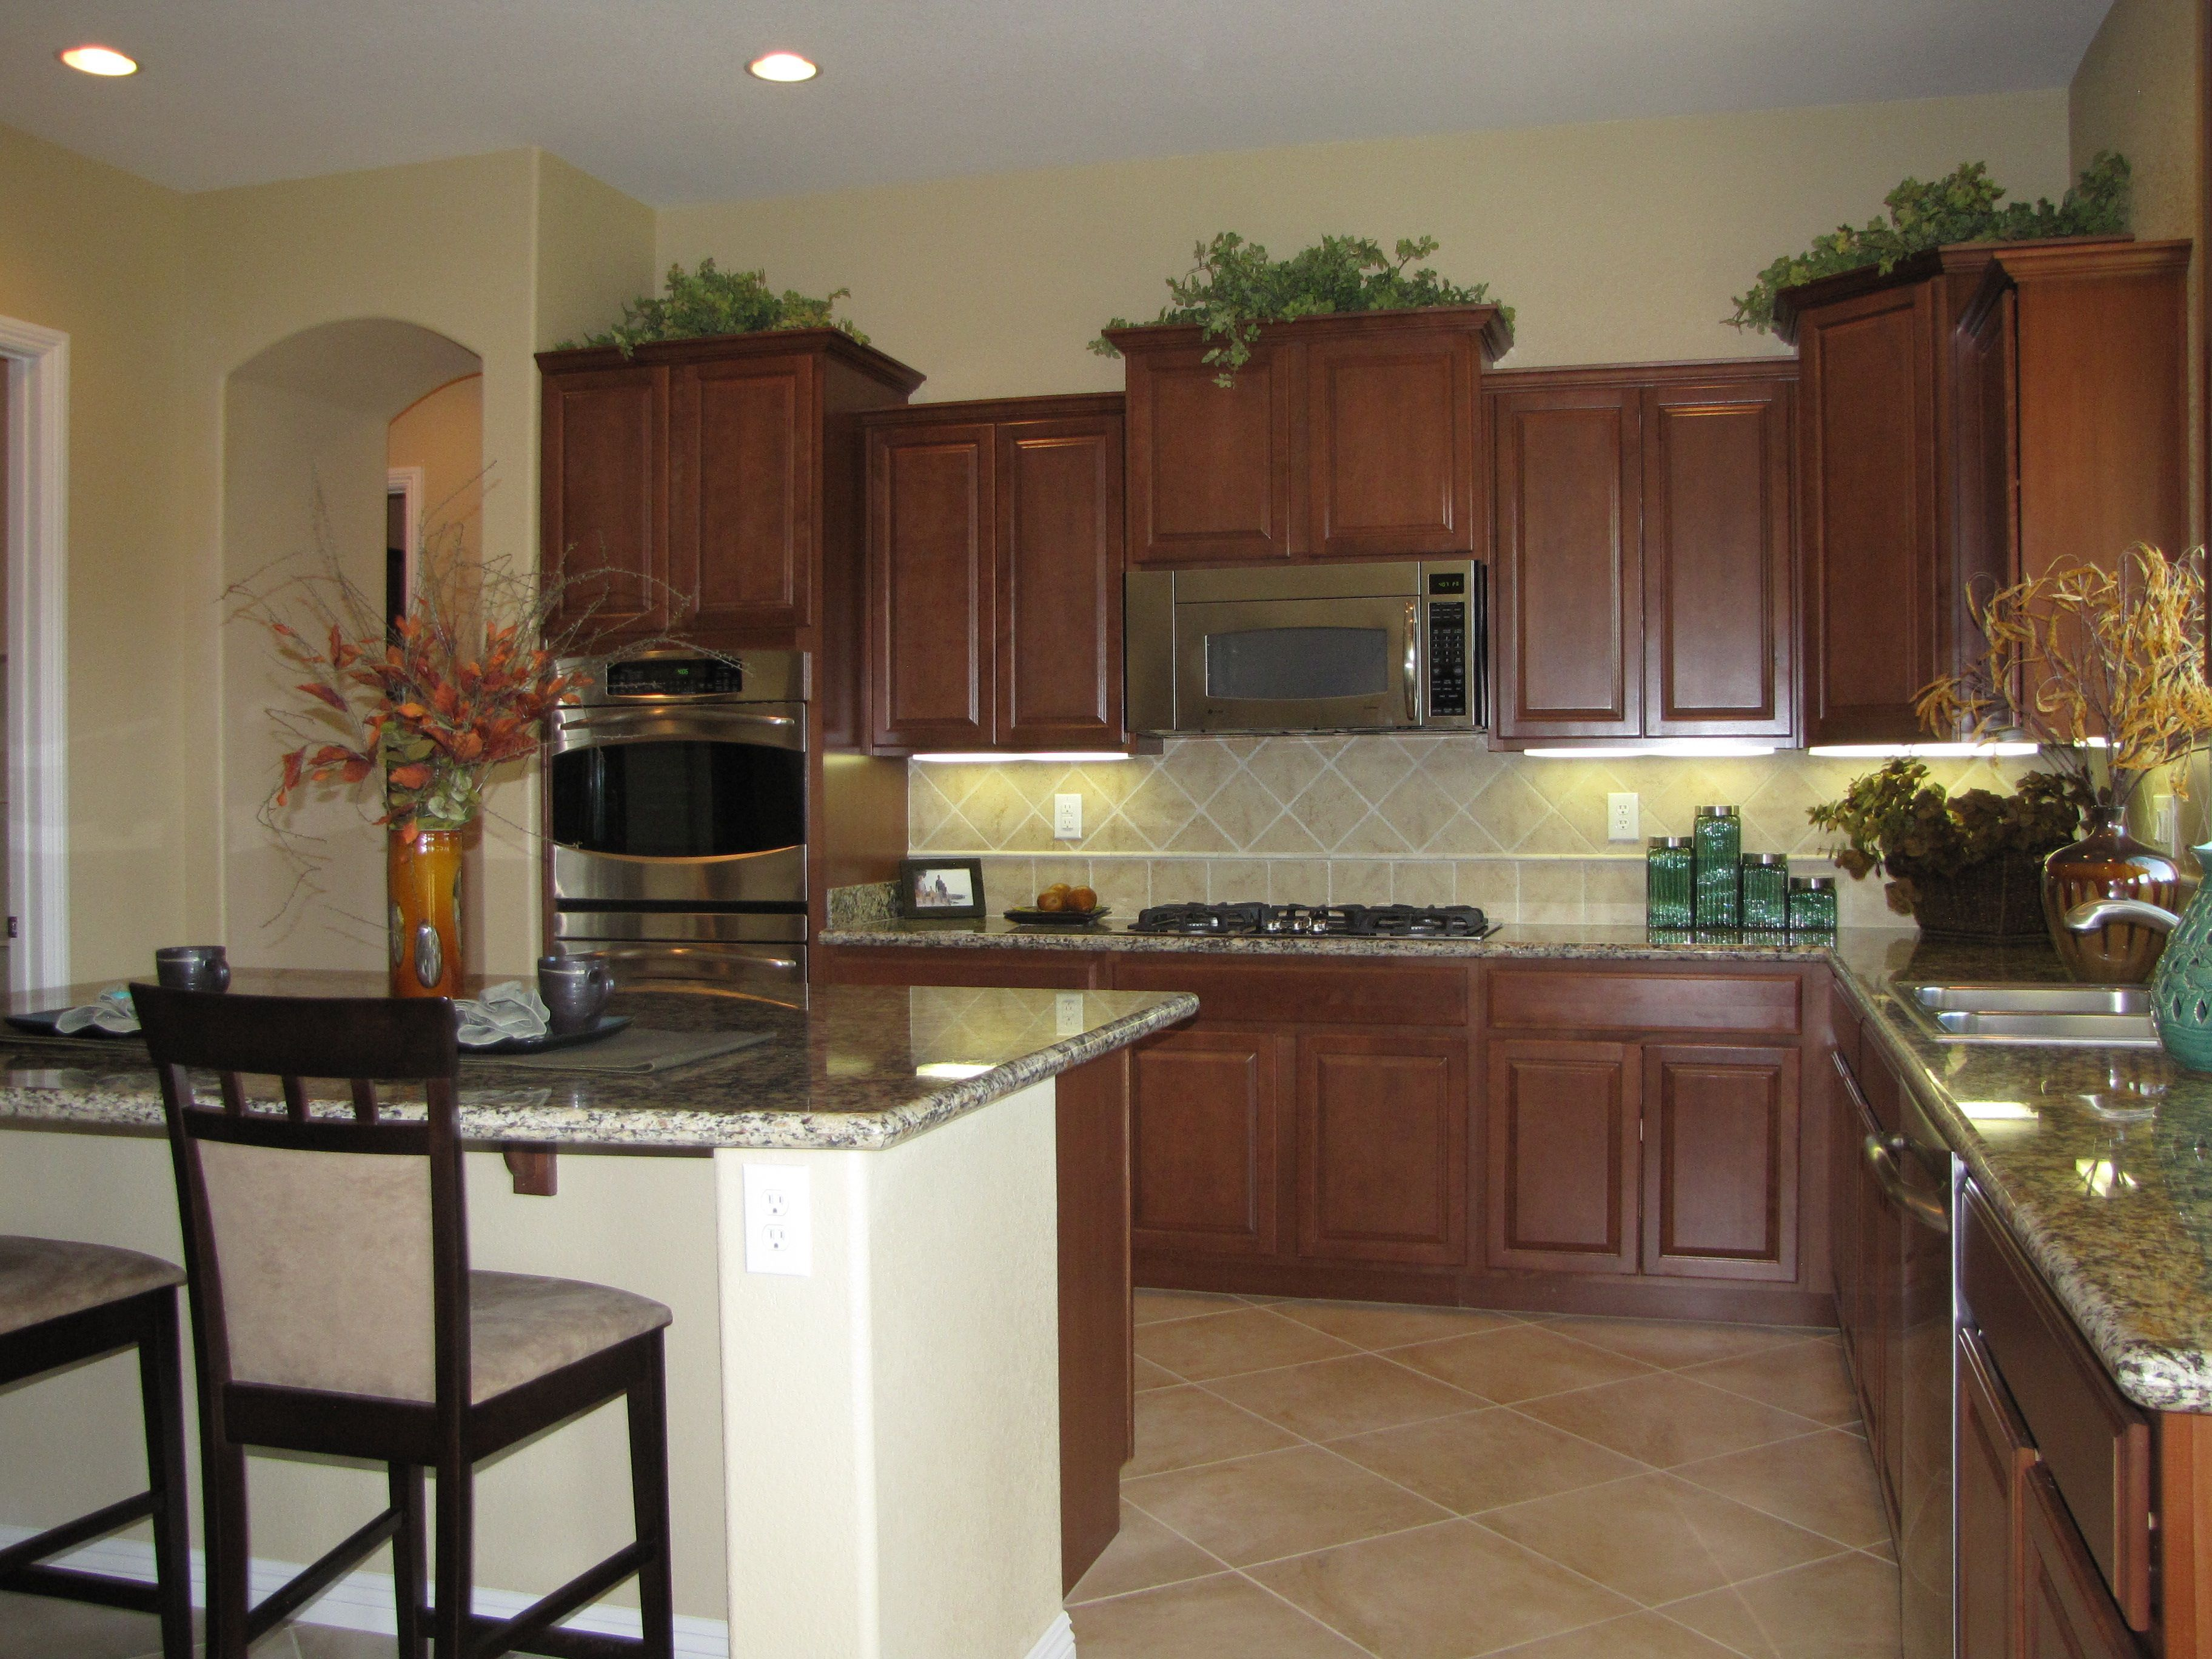 D R Horton Model Home Interior Paint Colors | The Expert on Model Kitchens  id=58888